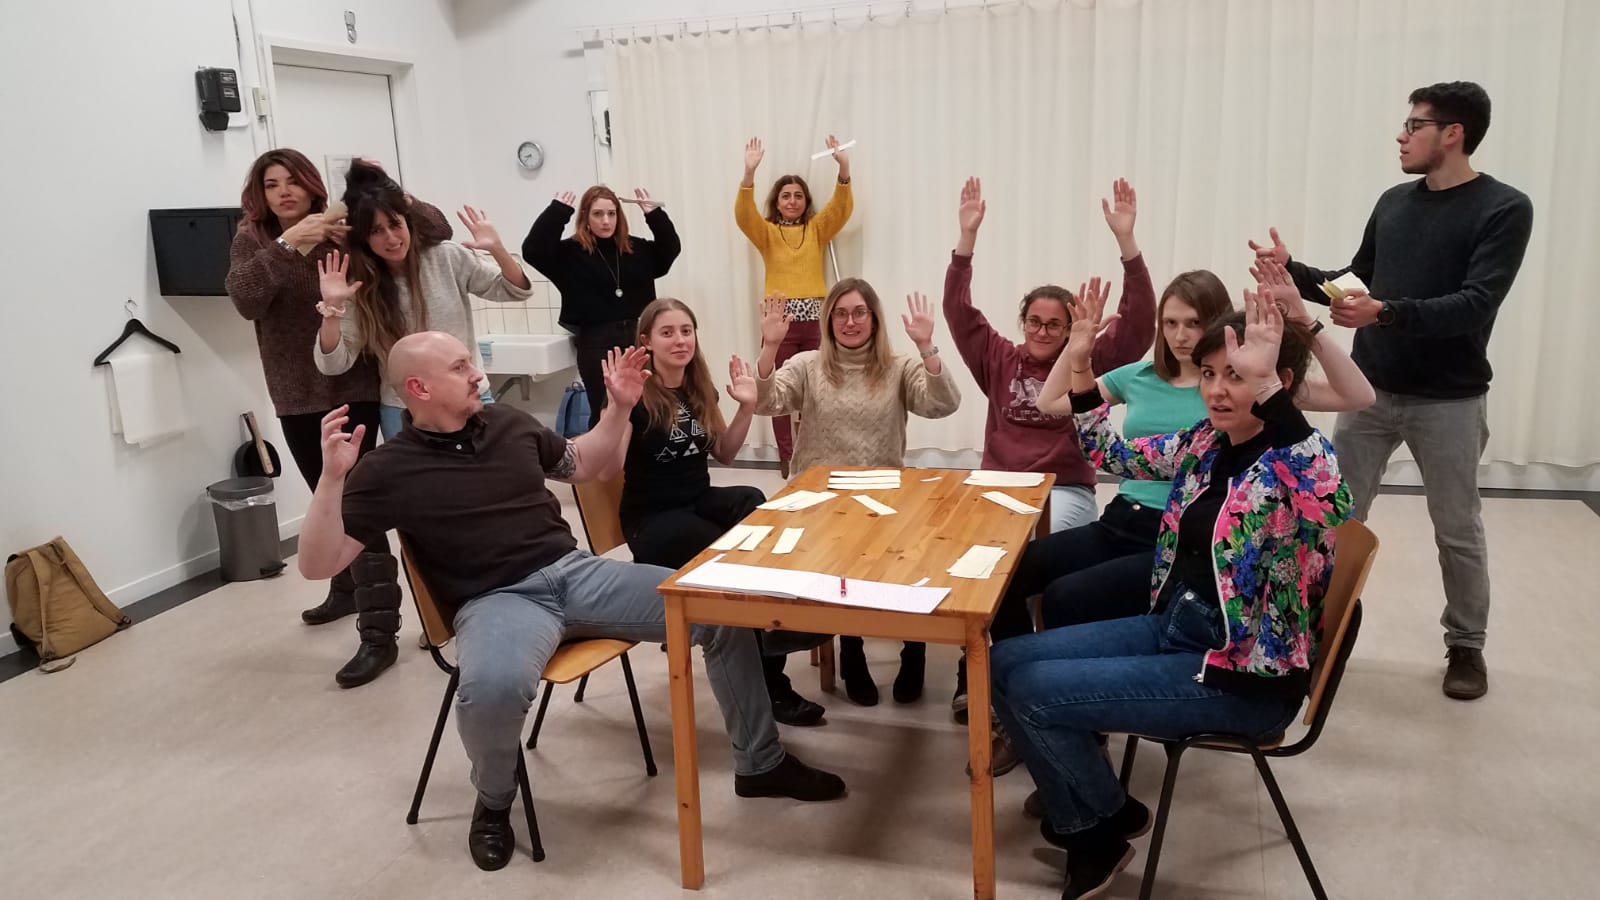 Acting Class Act Attack. A group of people form a semi-circle around a square table. Some are standing behind them. They all have their arms up in the air